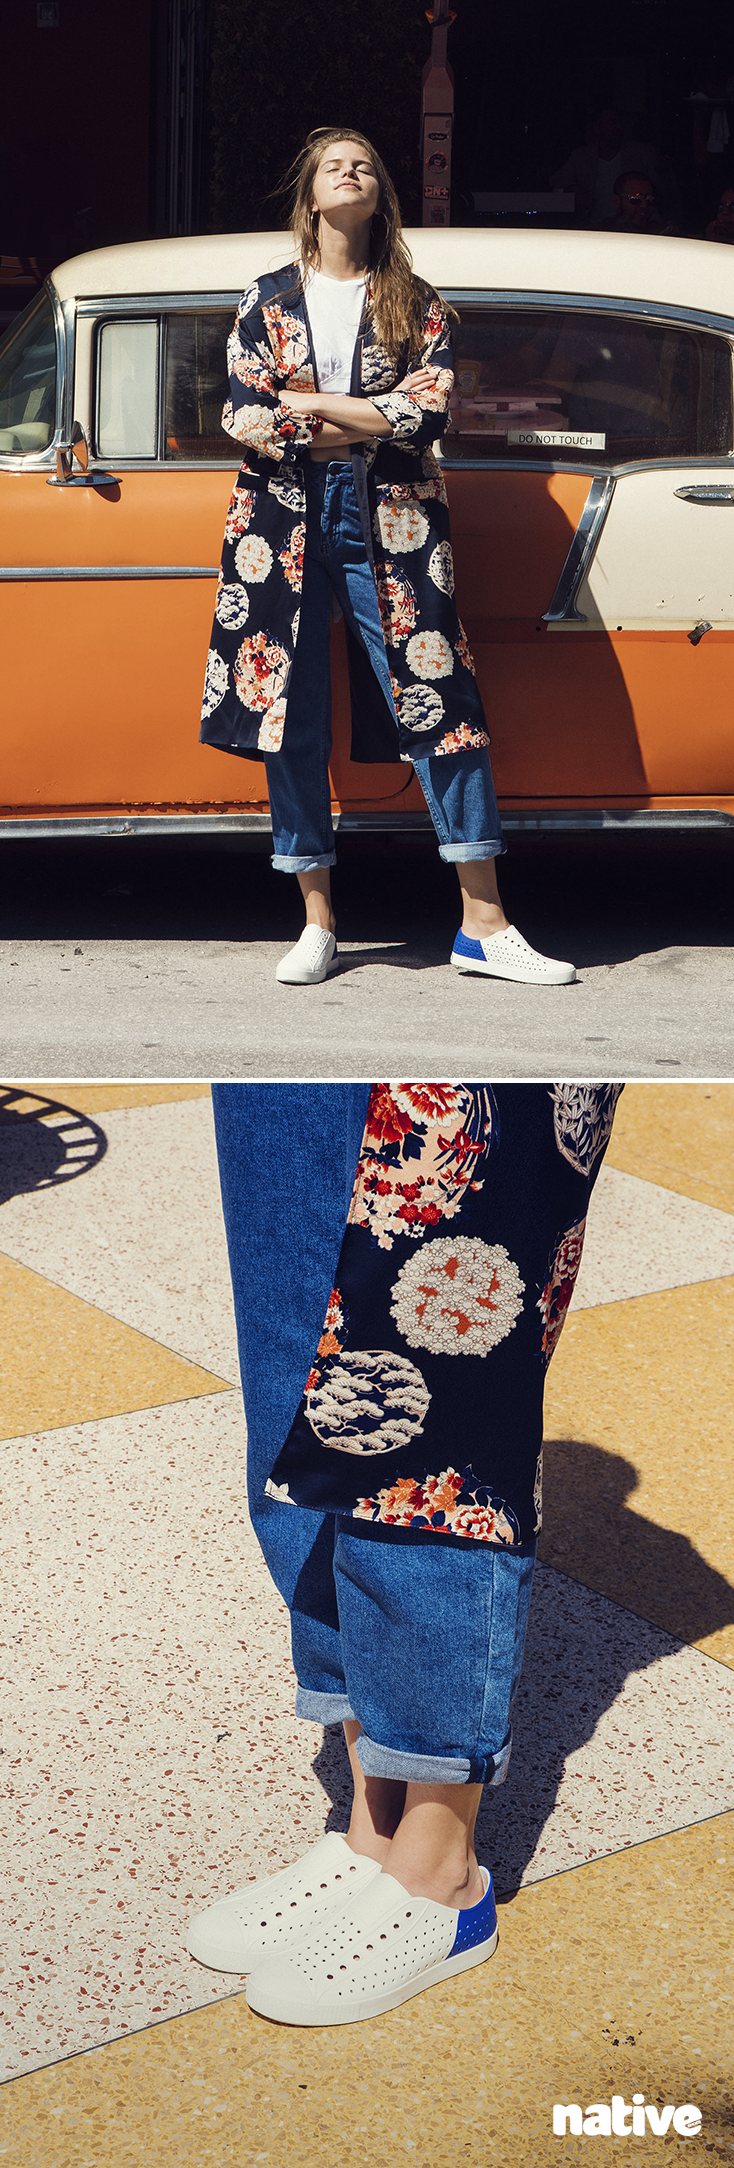 Sprint into sunshine. The Native Shoes